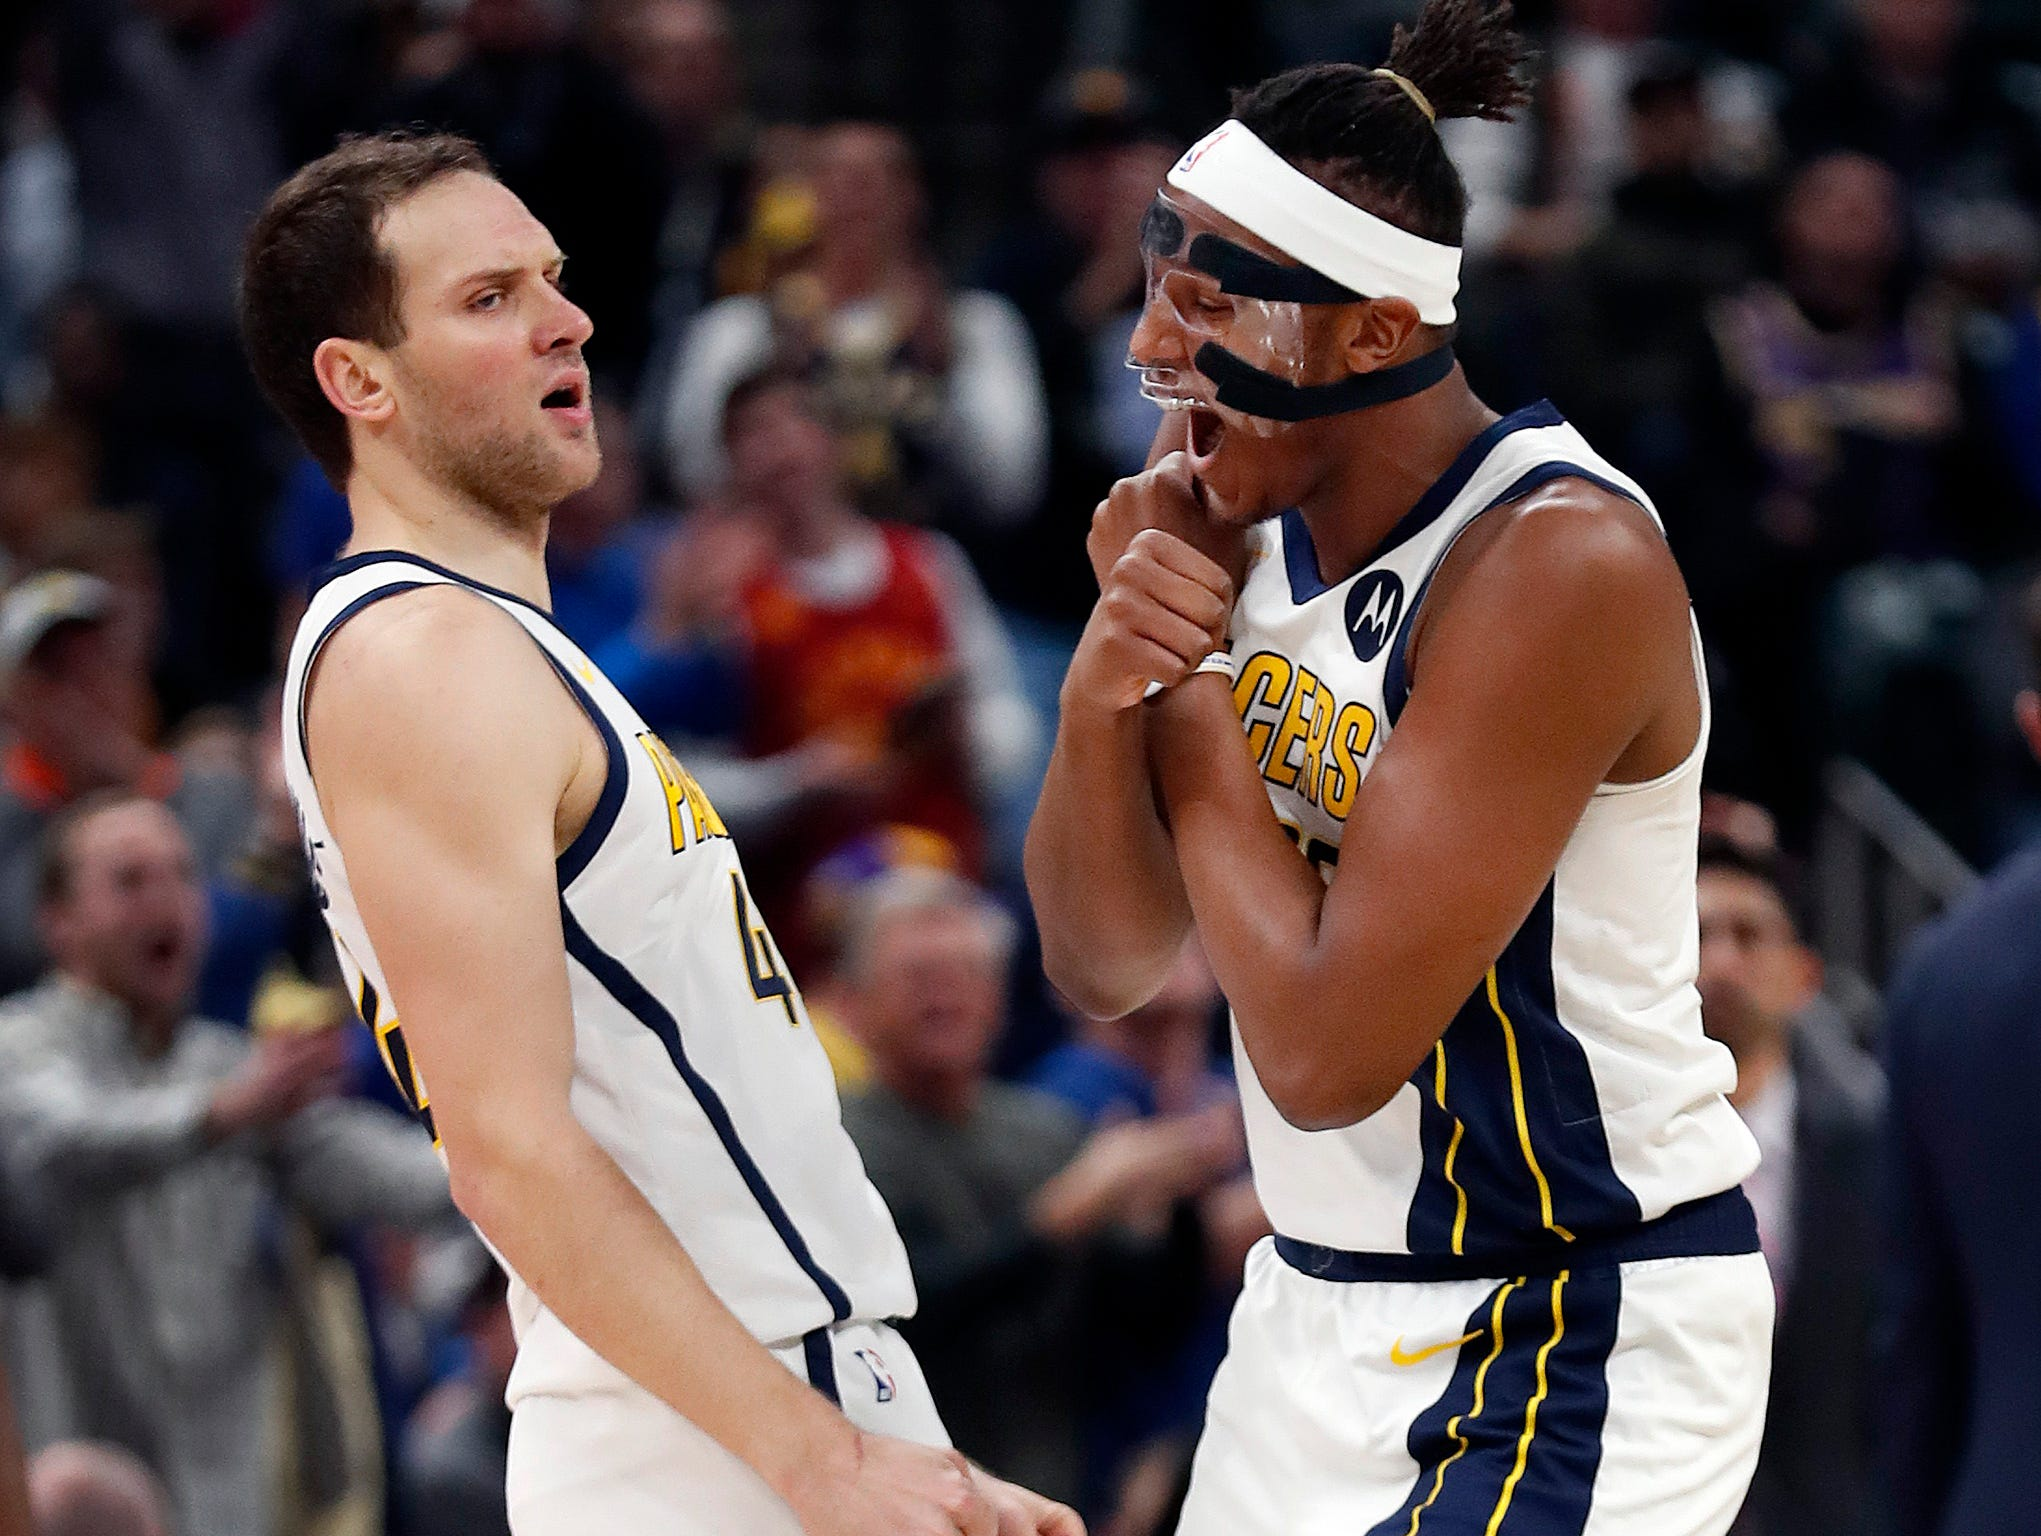 Indiana Pacers forward Bojan Bogdanovic (44) and Myles Turner (33) celebrate jumping out to a big leads over the Los Angeles Lakers in the first half of their game at Bankers Life Fieldhouse on Tuesday, Feb. 5, 2019.